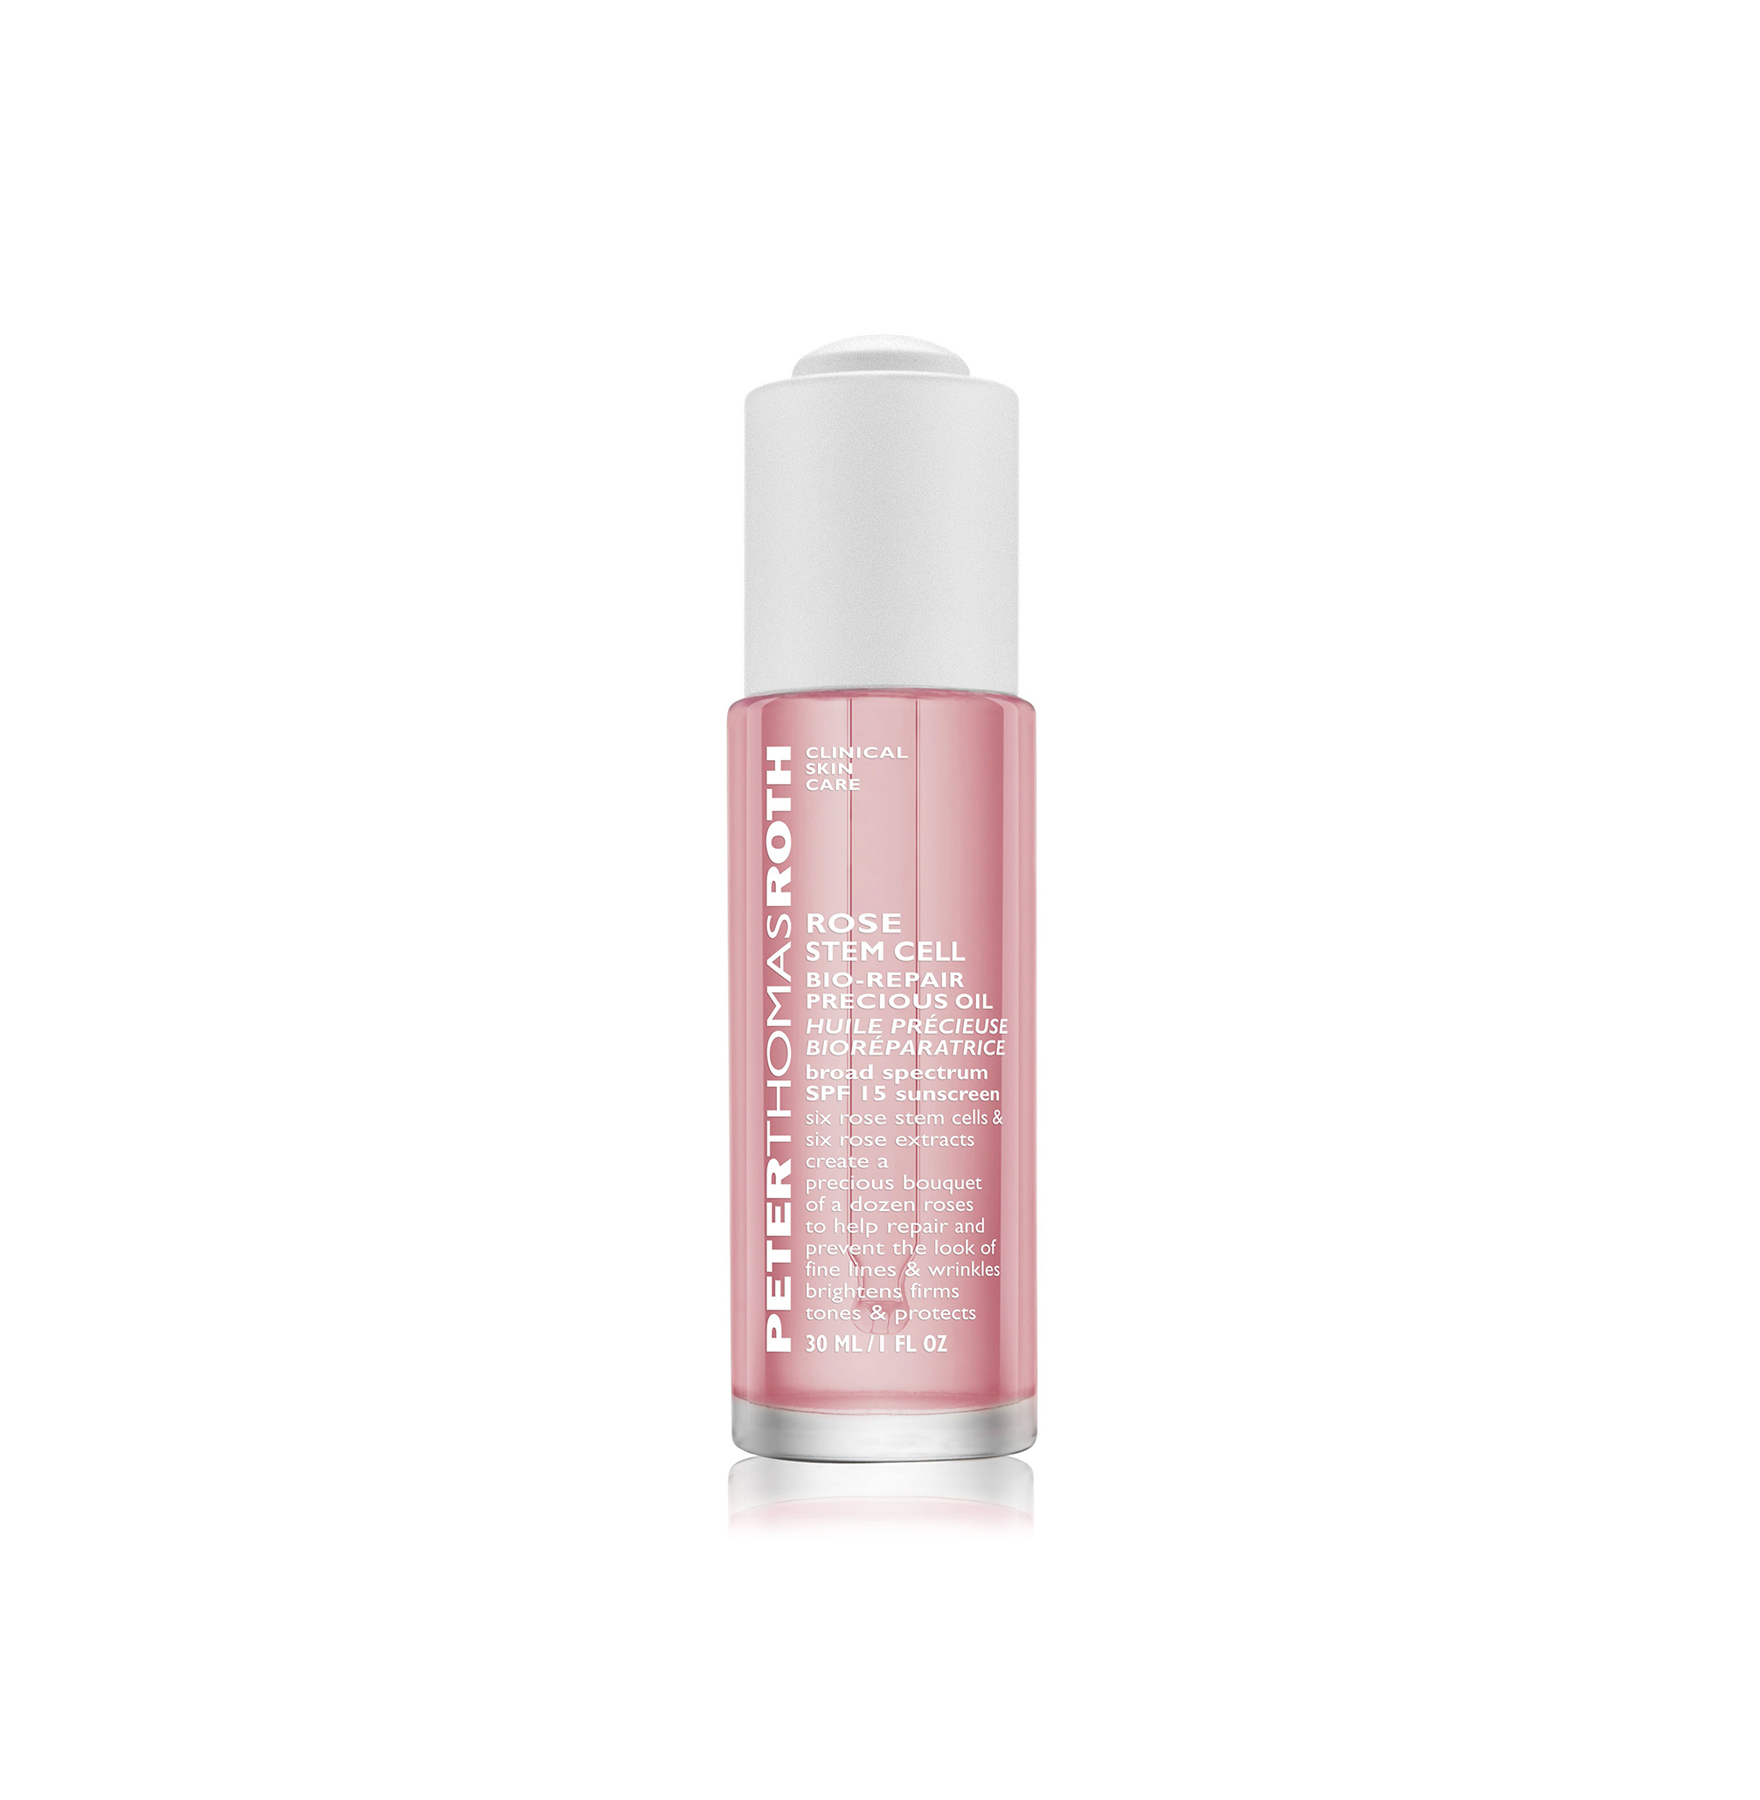 Rose Bio-Repair Precious Oil